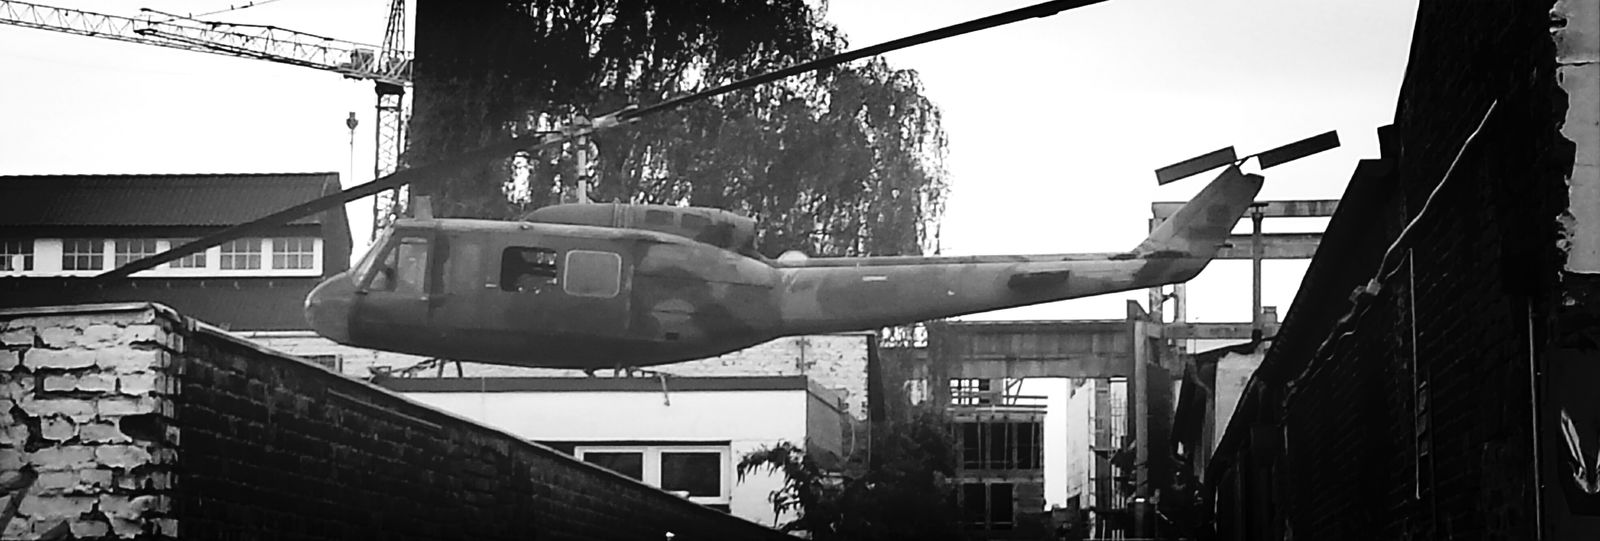 Helicopter What?